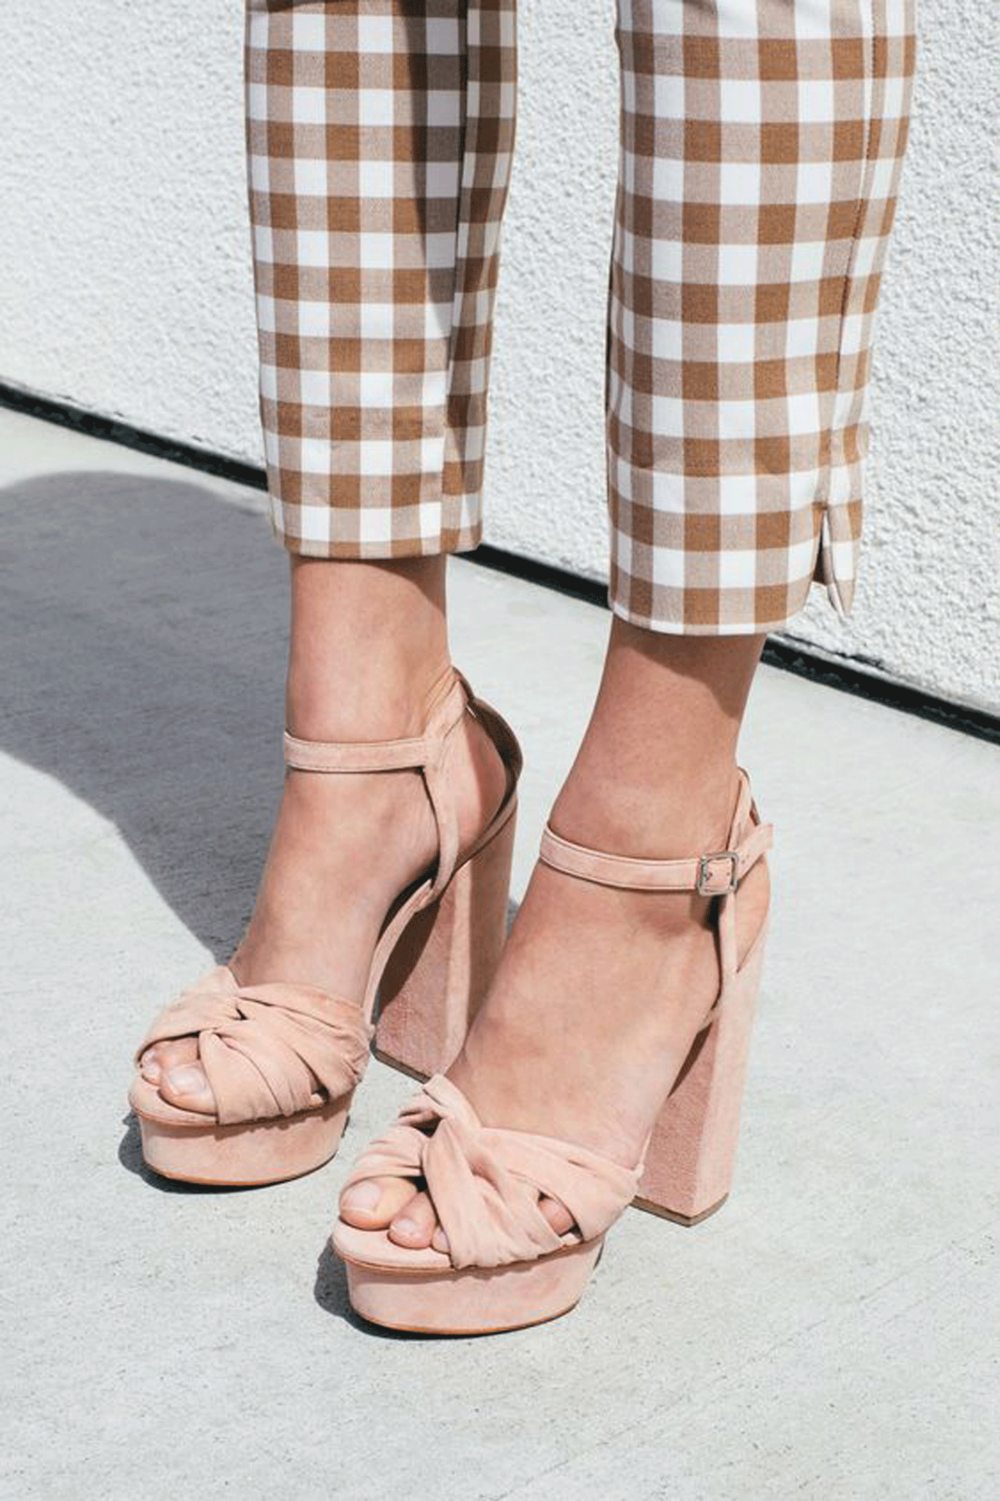 gingham inspiration | @themissprints